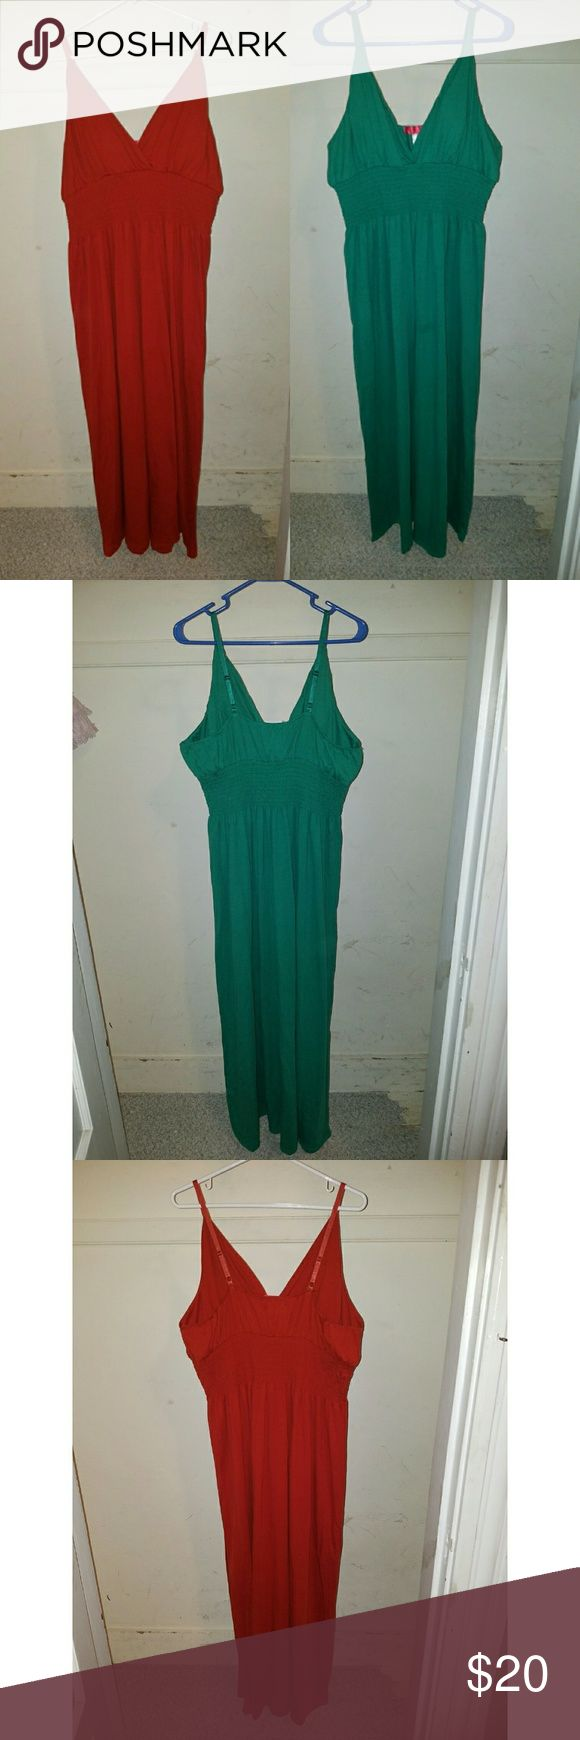 Maxi Dresses Size 2Xl/3XL Preowned Maxi Dresses Worn Once Shows Normal Wash And Wear in good condition.   Green maxi dress size 2Xl Red Orange maxi dress size 3XL Dresses Maxi